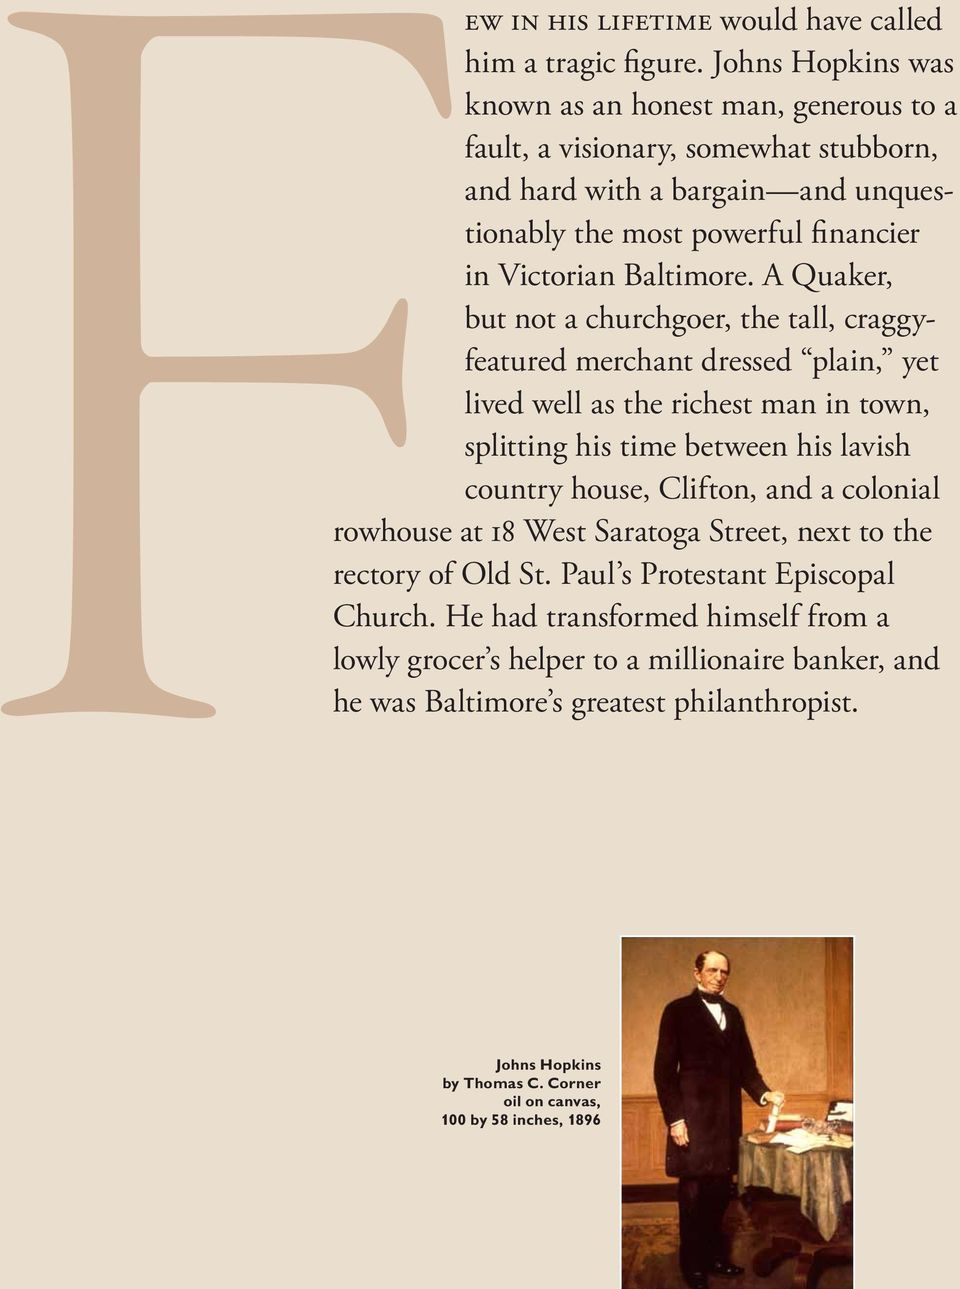 A Quaker, but not a churchgoer, the tall, craggyfeatured merchant dressed plain, yet lived well as the richest man in town, splitting his time between his lavish country house, Clifton,